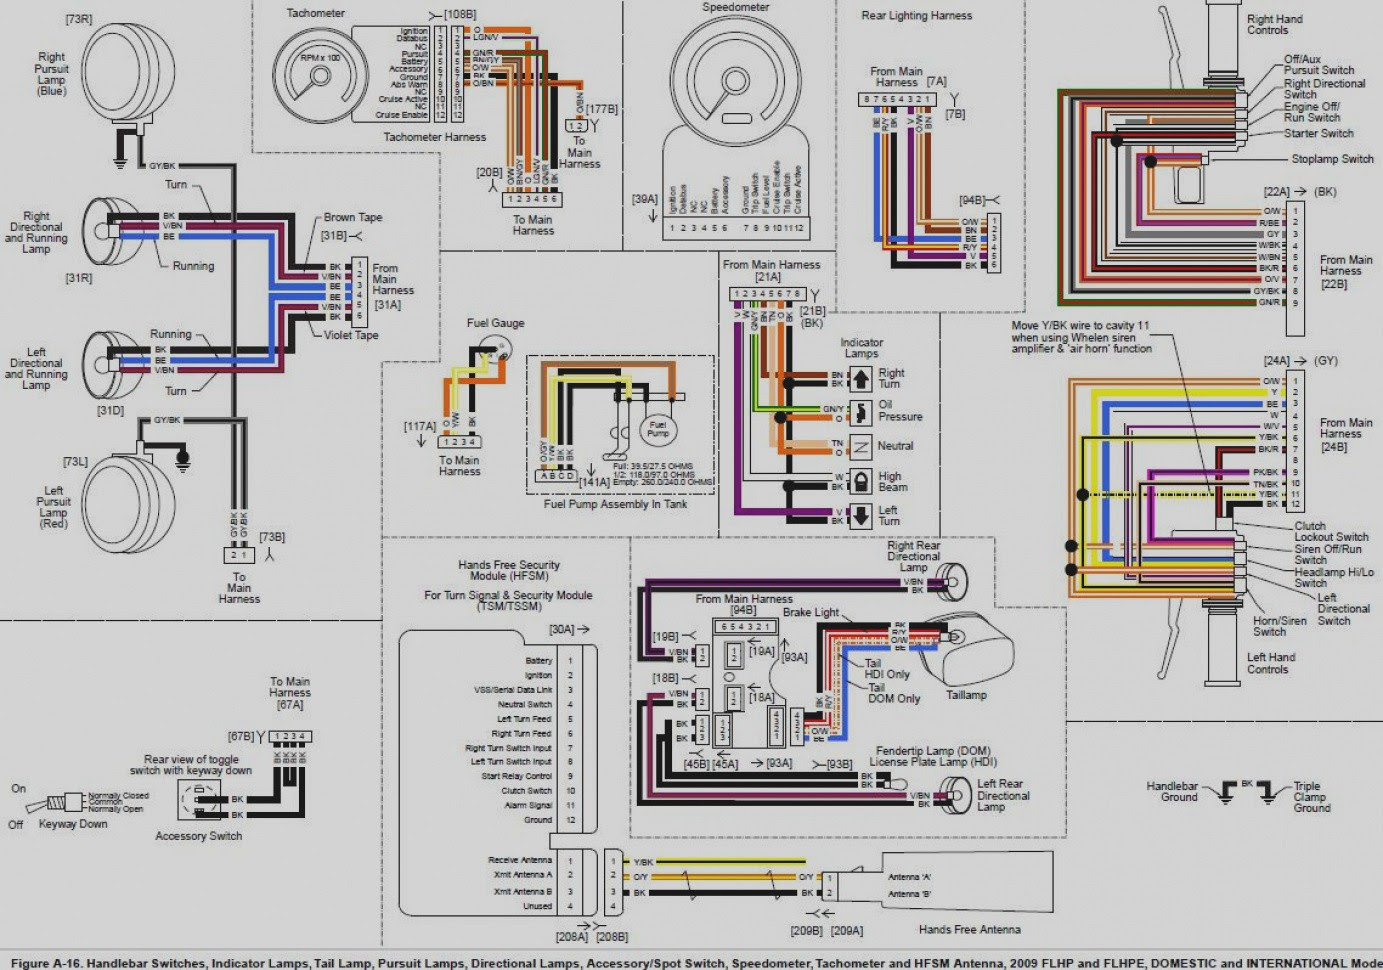 Harley Davidson Wide Glide Wiring Diagram Wiring Diagrams Name Name Miglioribanche It